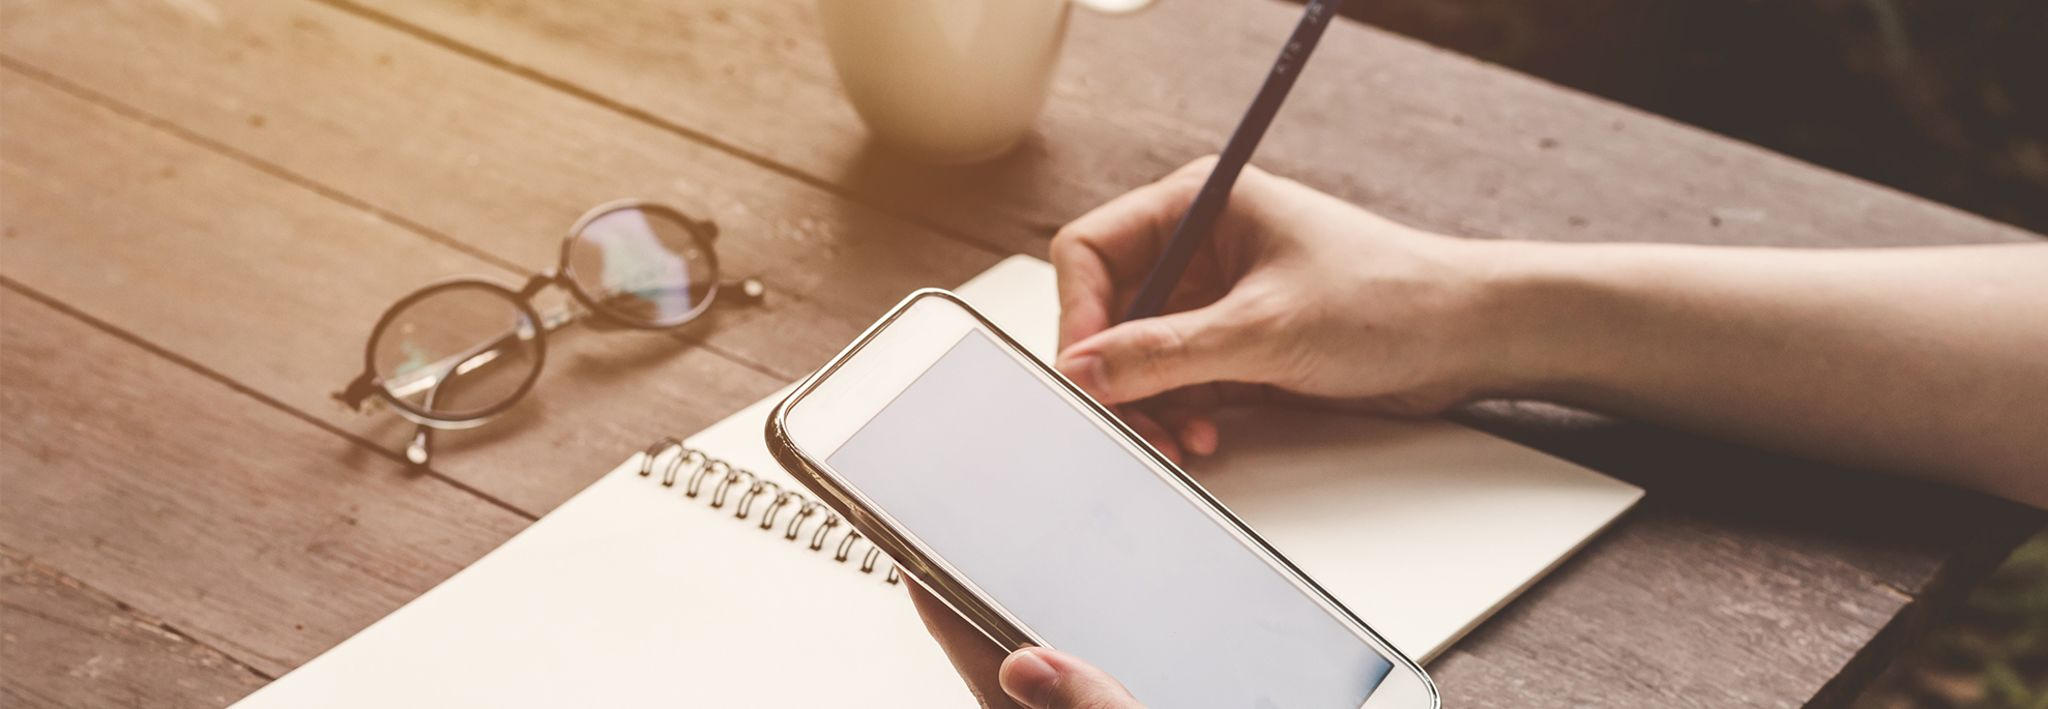 A woman is communicating on her phone while taking notes.